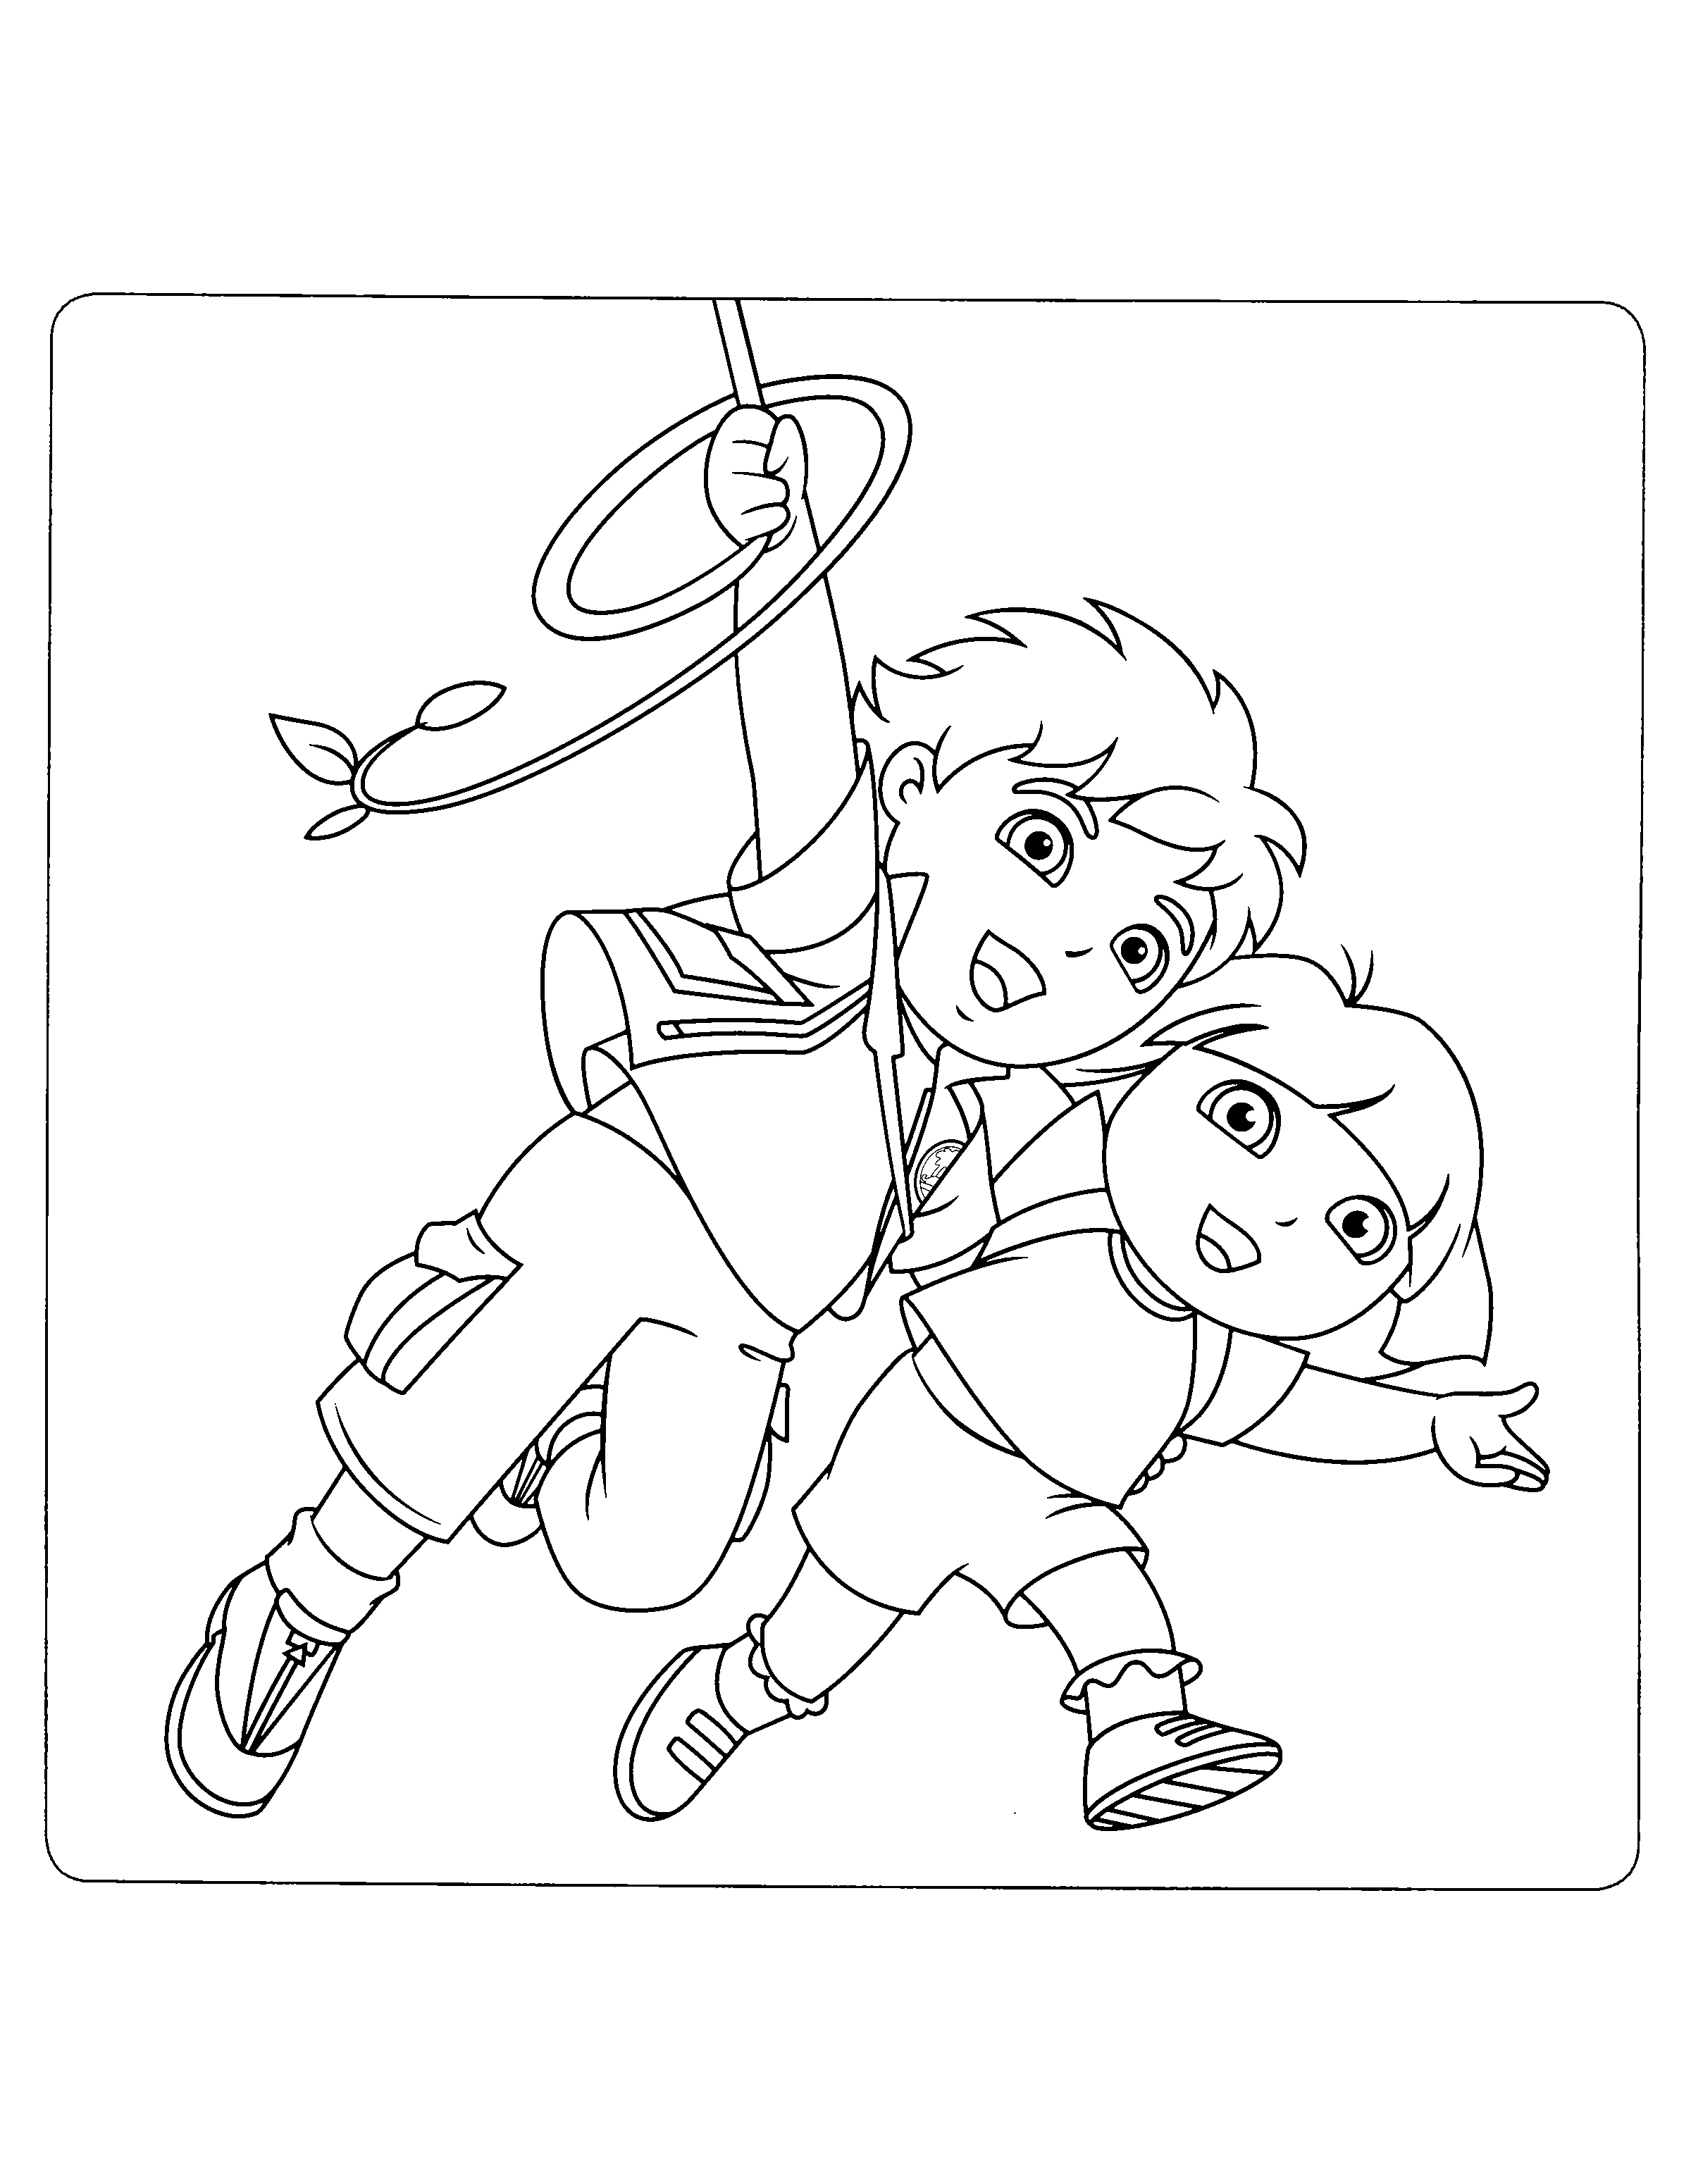 Go Diego Go 01 14 Png 2400 3100 Colouring Pages Niece And Nephew Go Diego Go